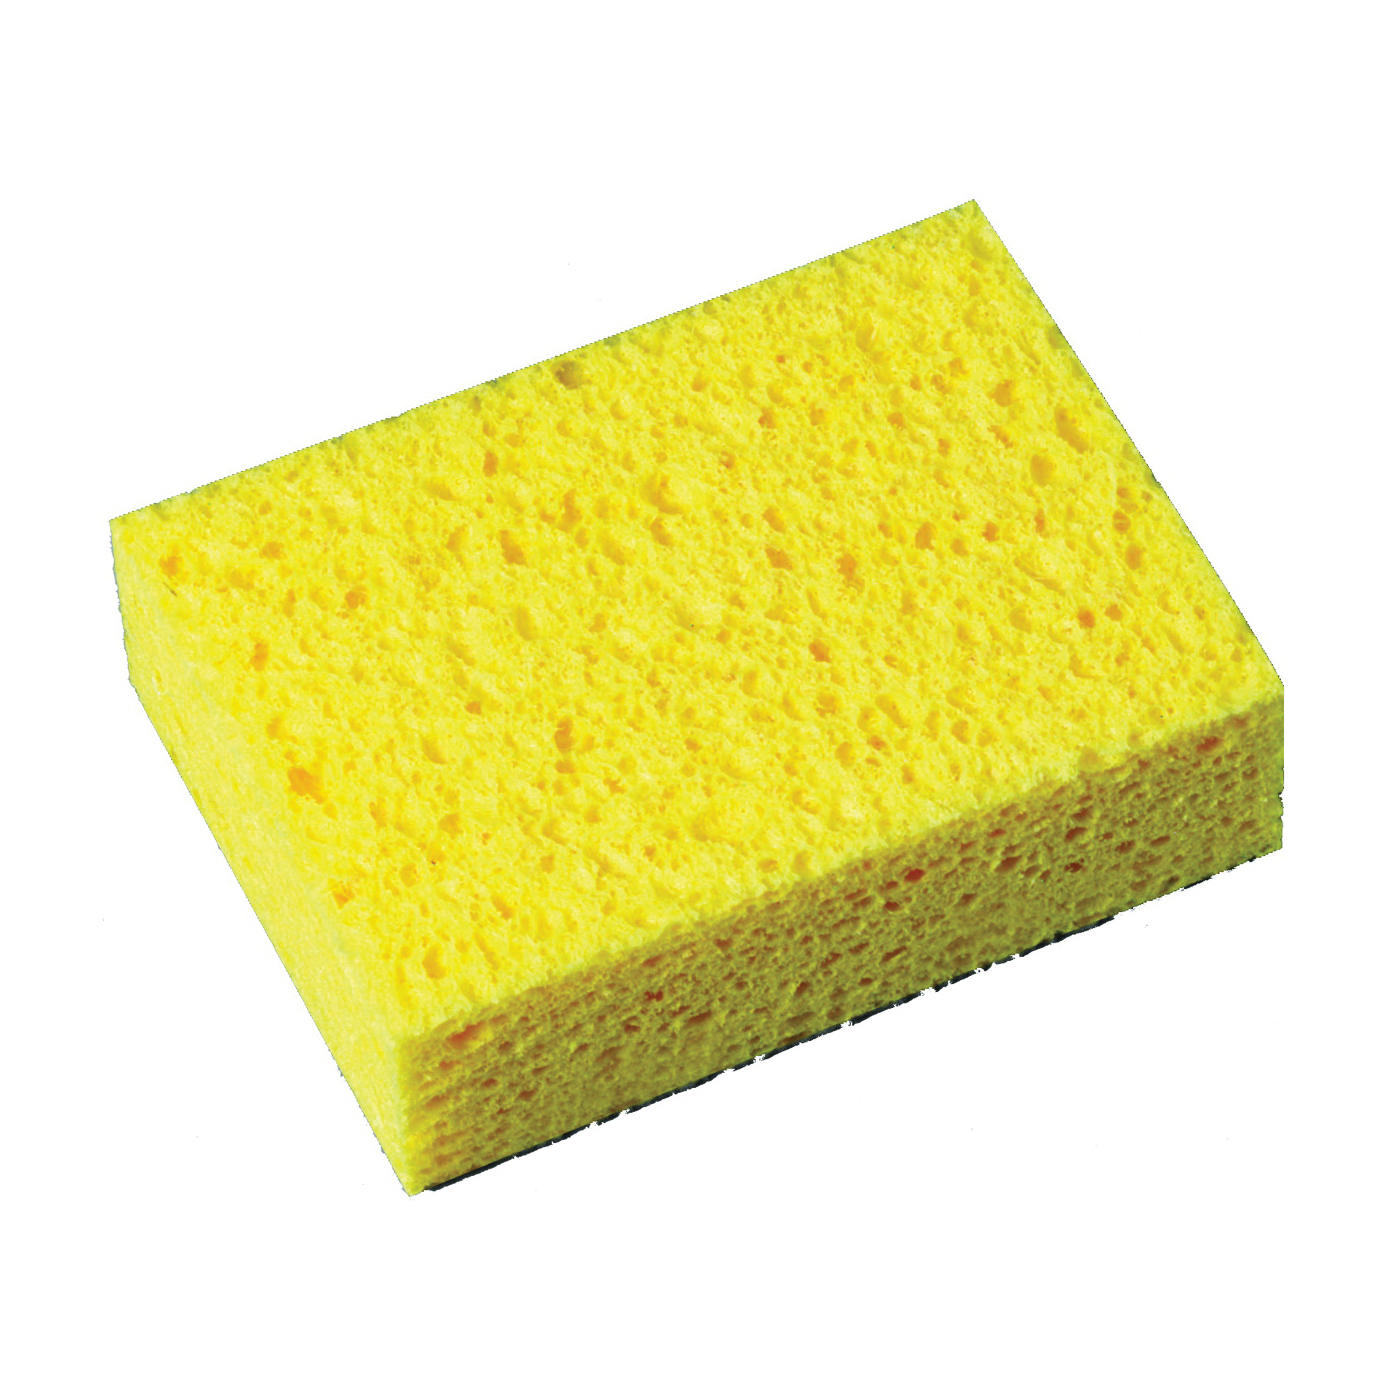 Picture of Scotch-Brite 7449-T Commercial Sponge, 6 in L, 4-1/4 in W, 1.6 in Thick, Cellulose, Yellow